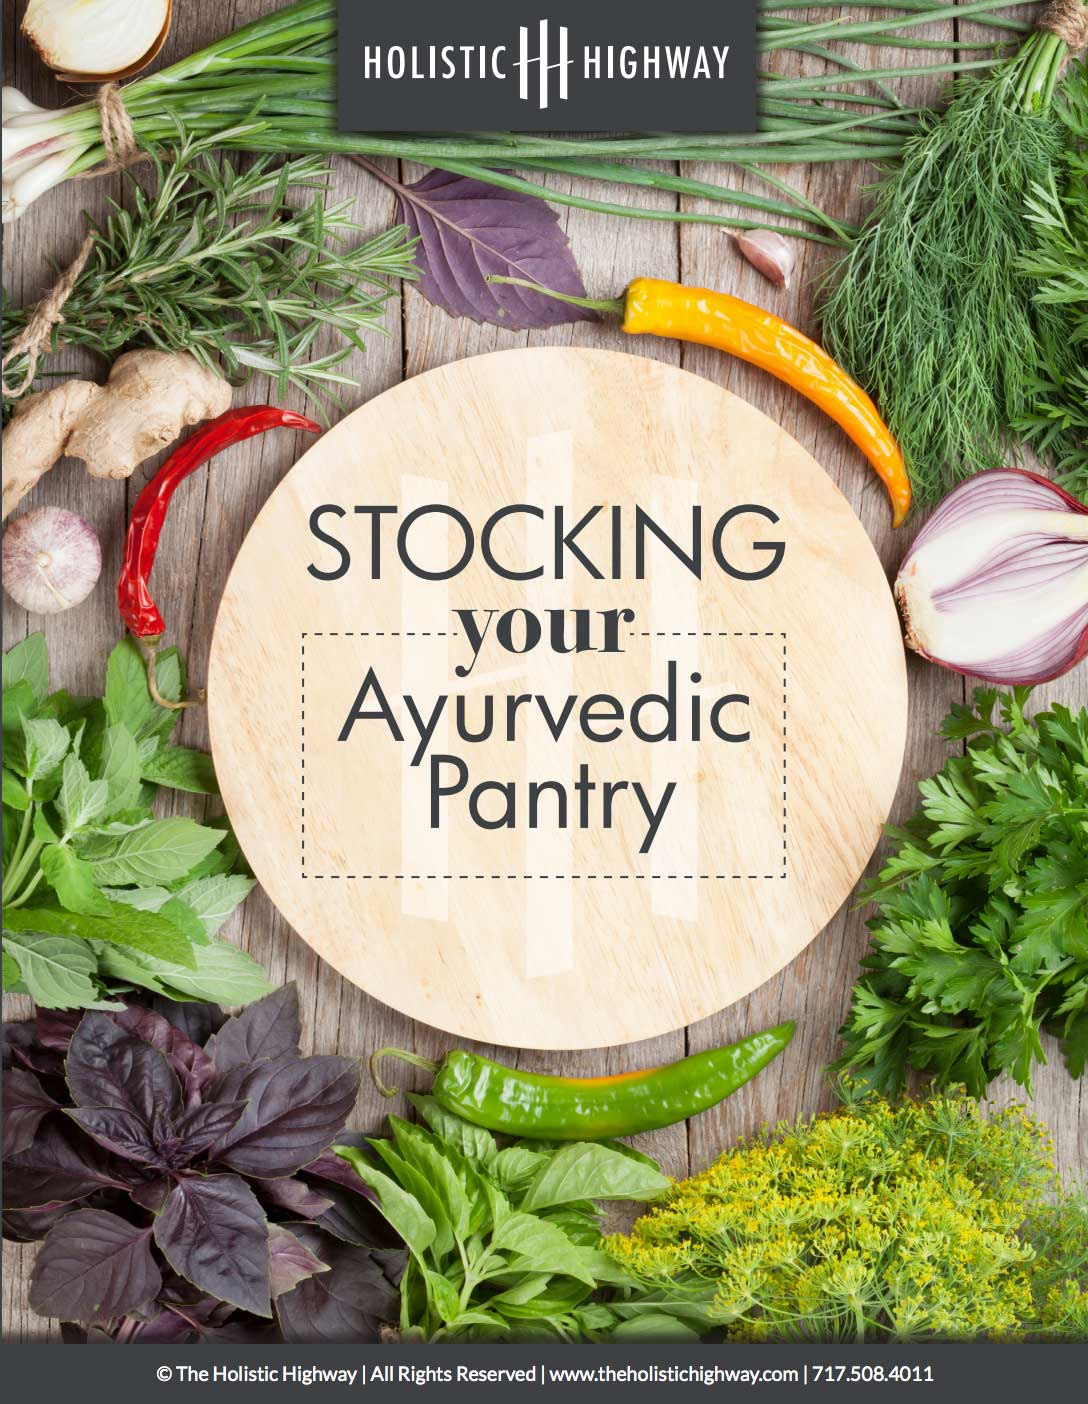 Stocking-your-Ayurvedic-Pantry